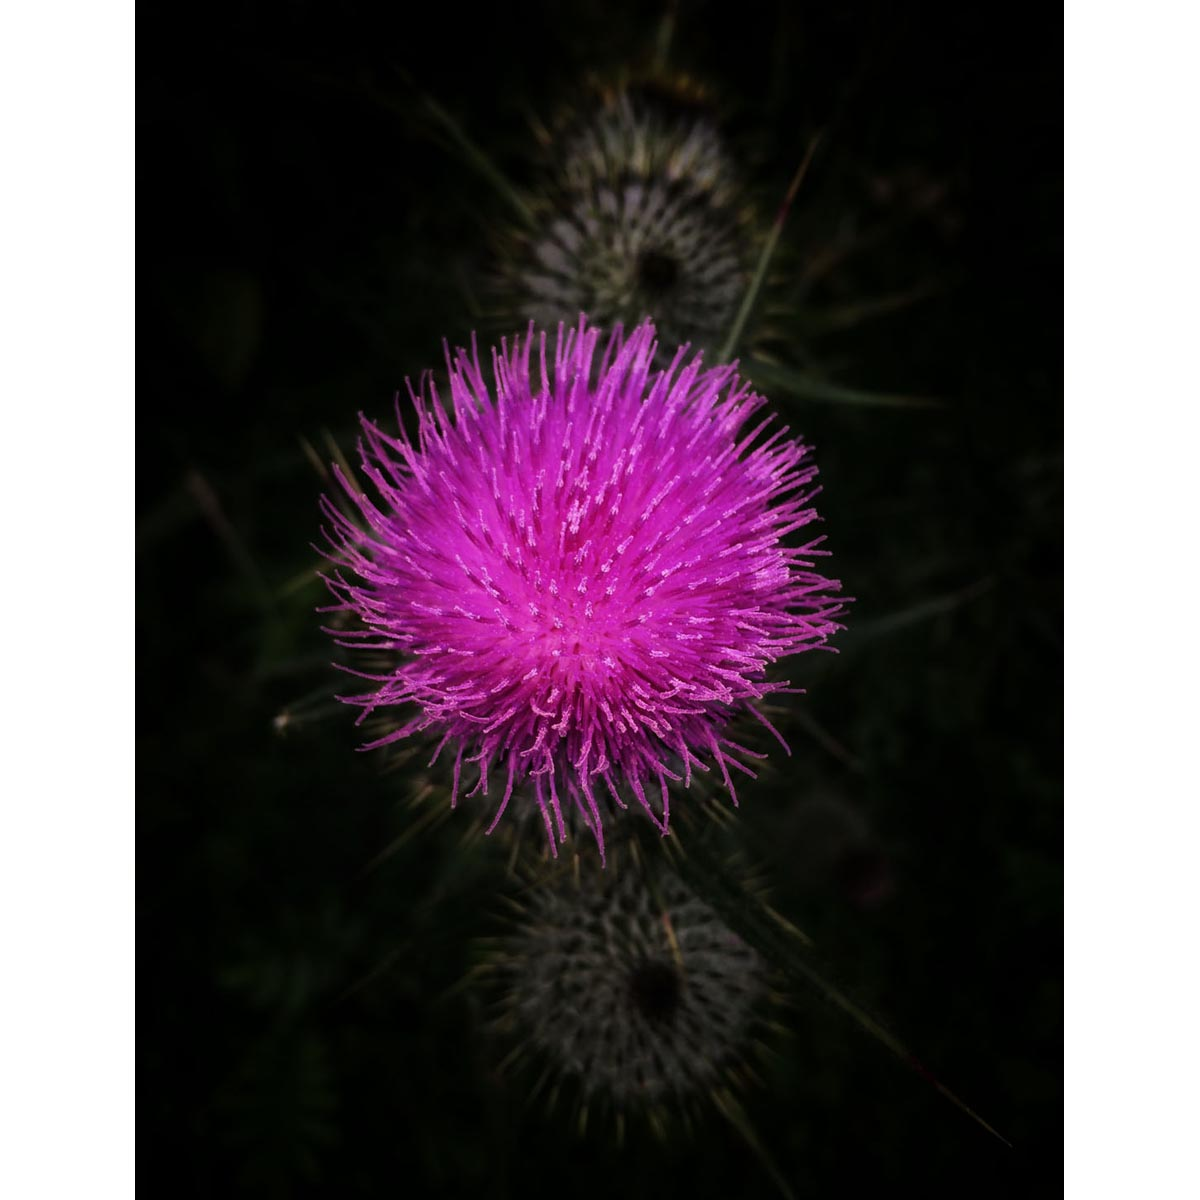 Contemporary fine art photograph of Irish thistle by Stephen S T Bradley - photo 0966